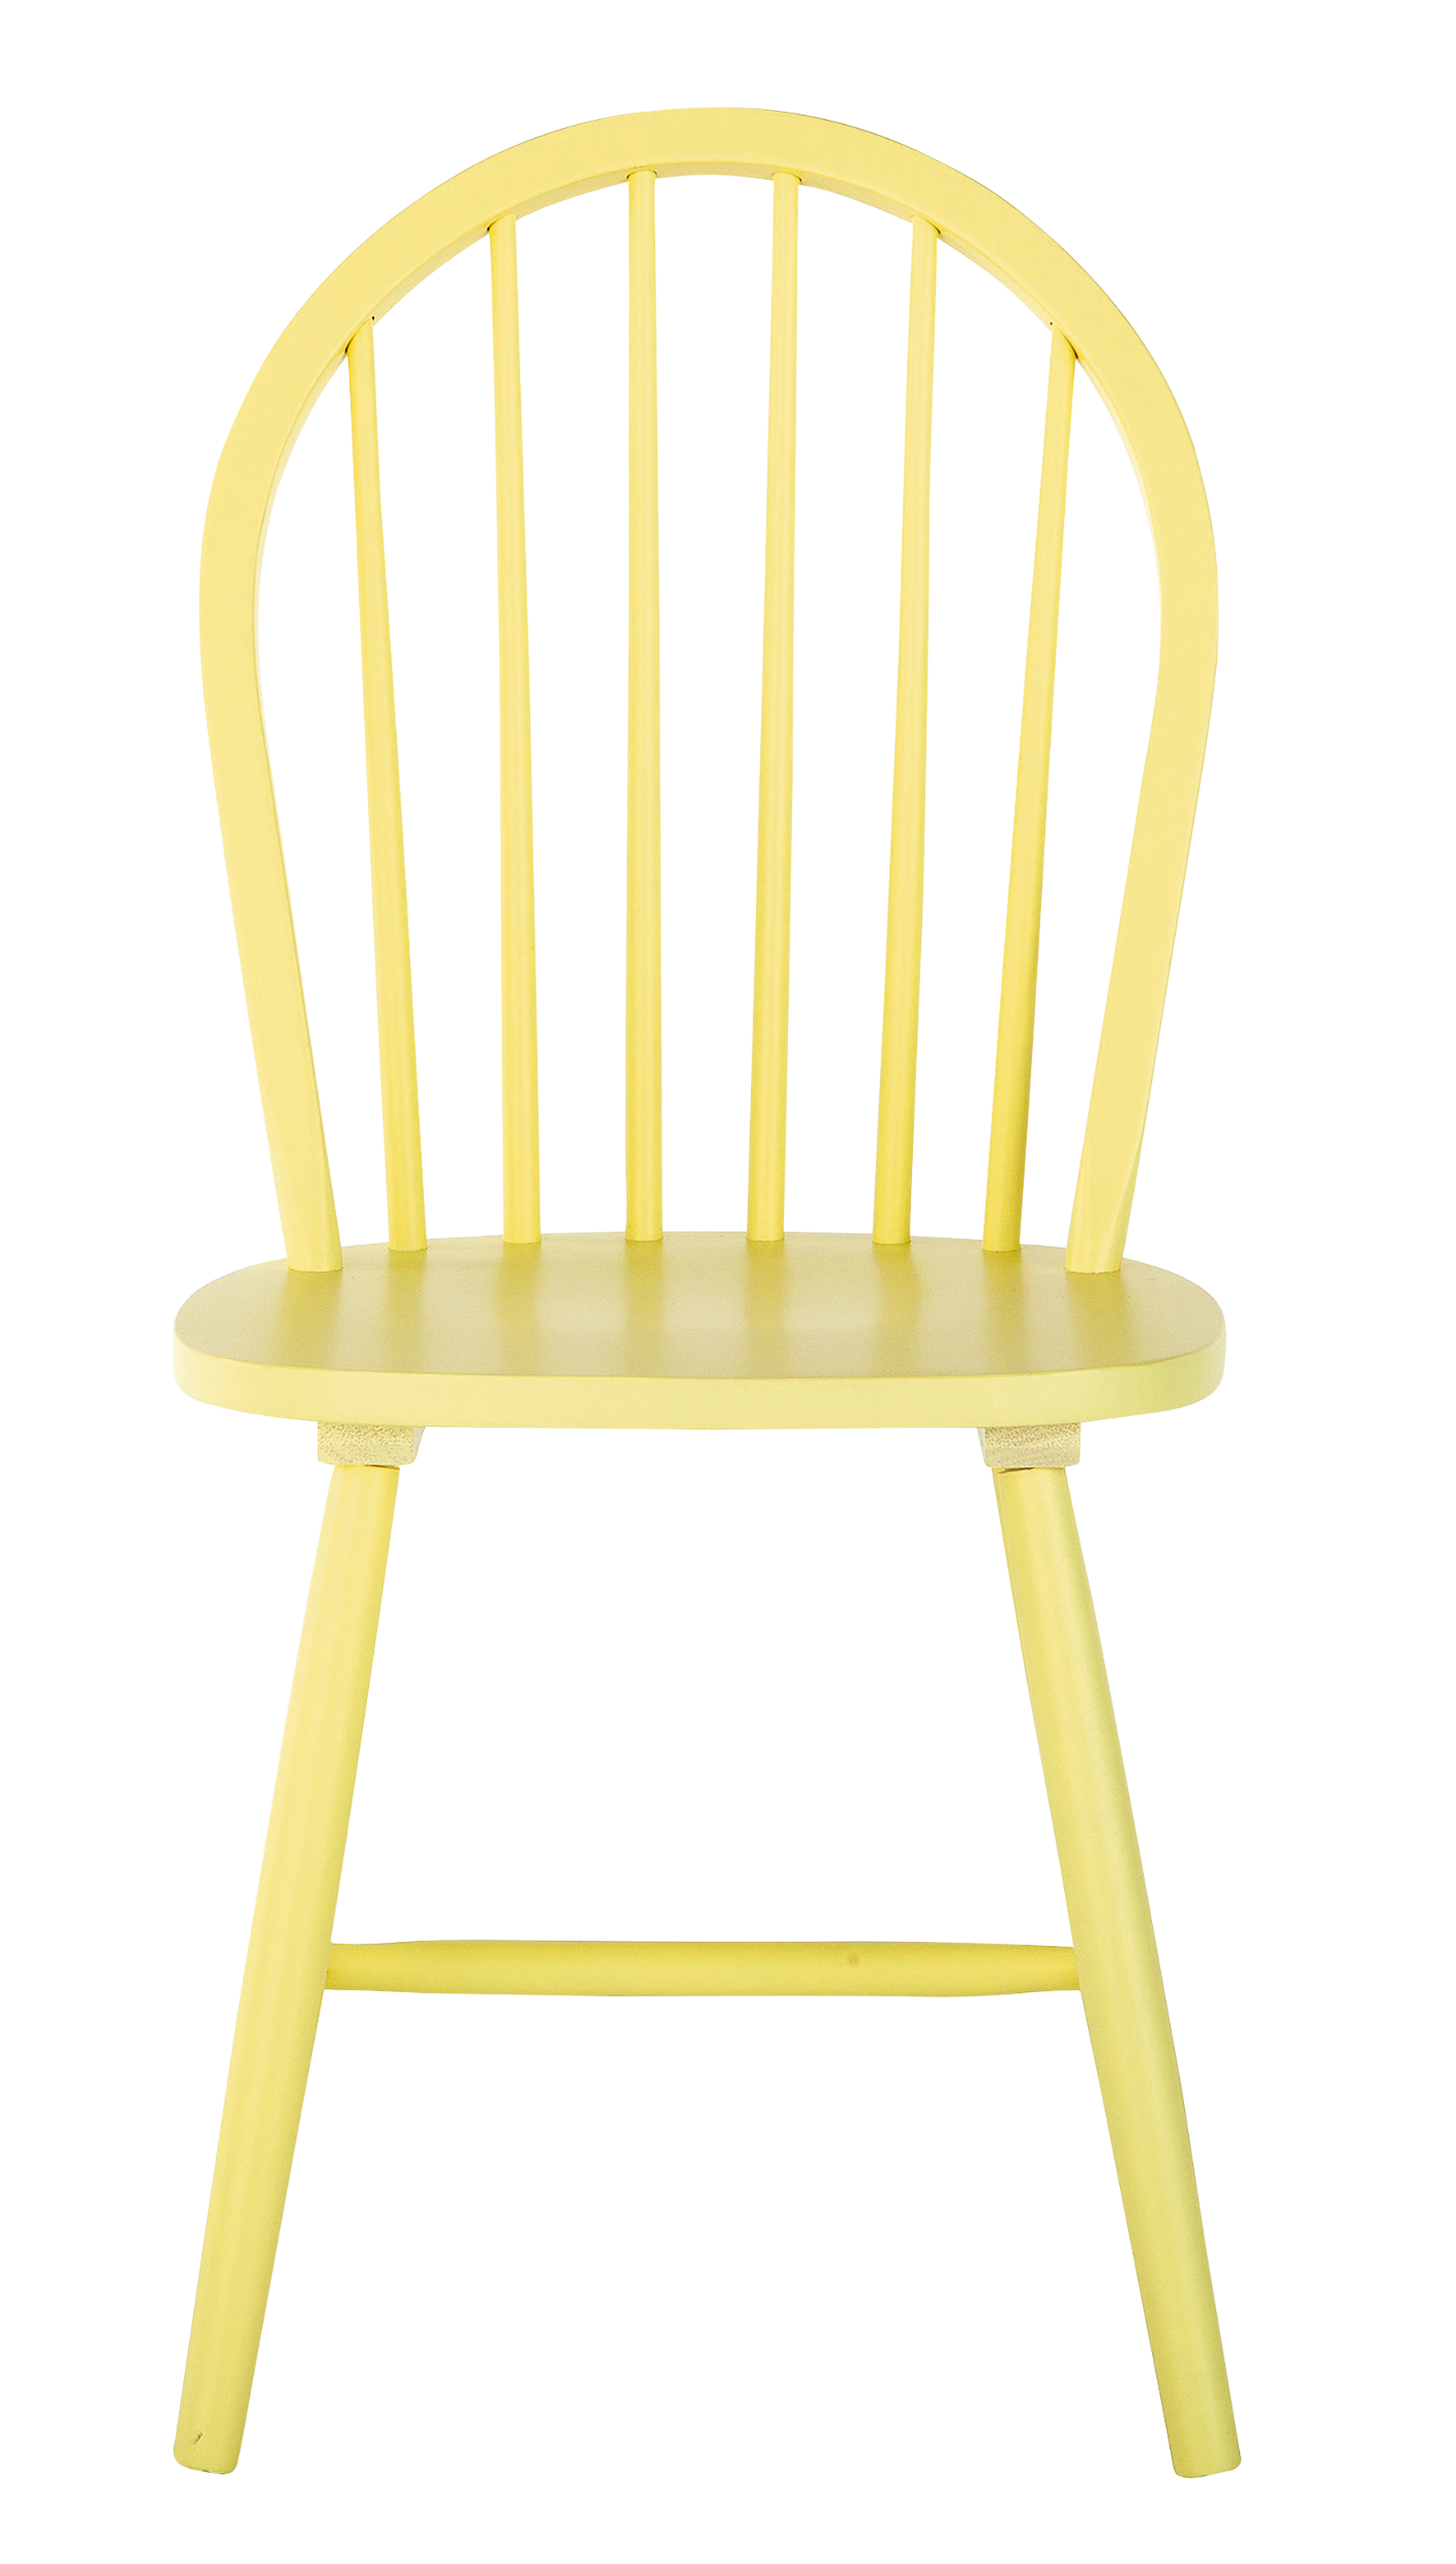 daisy-chair-yellow